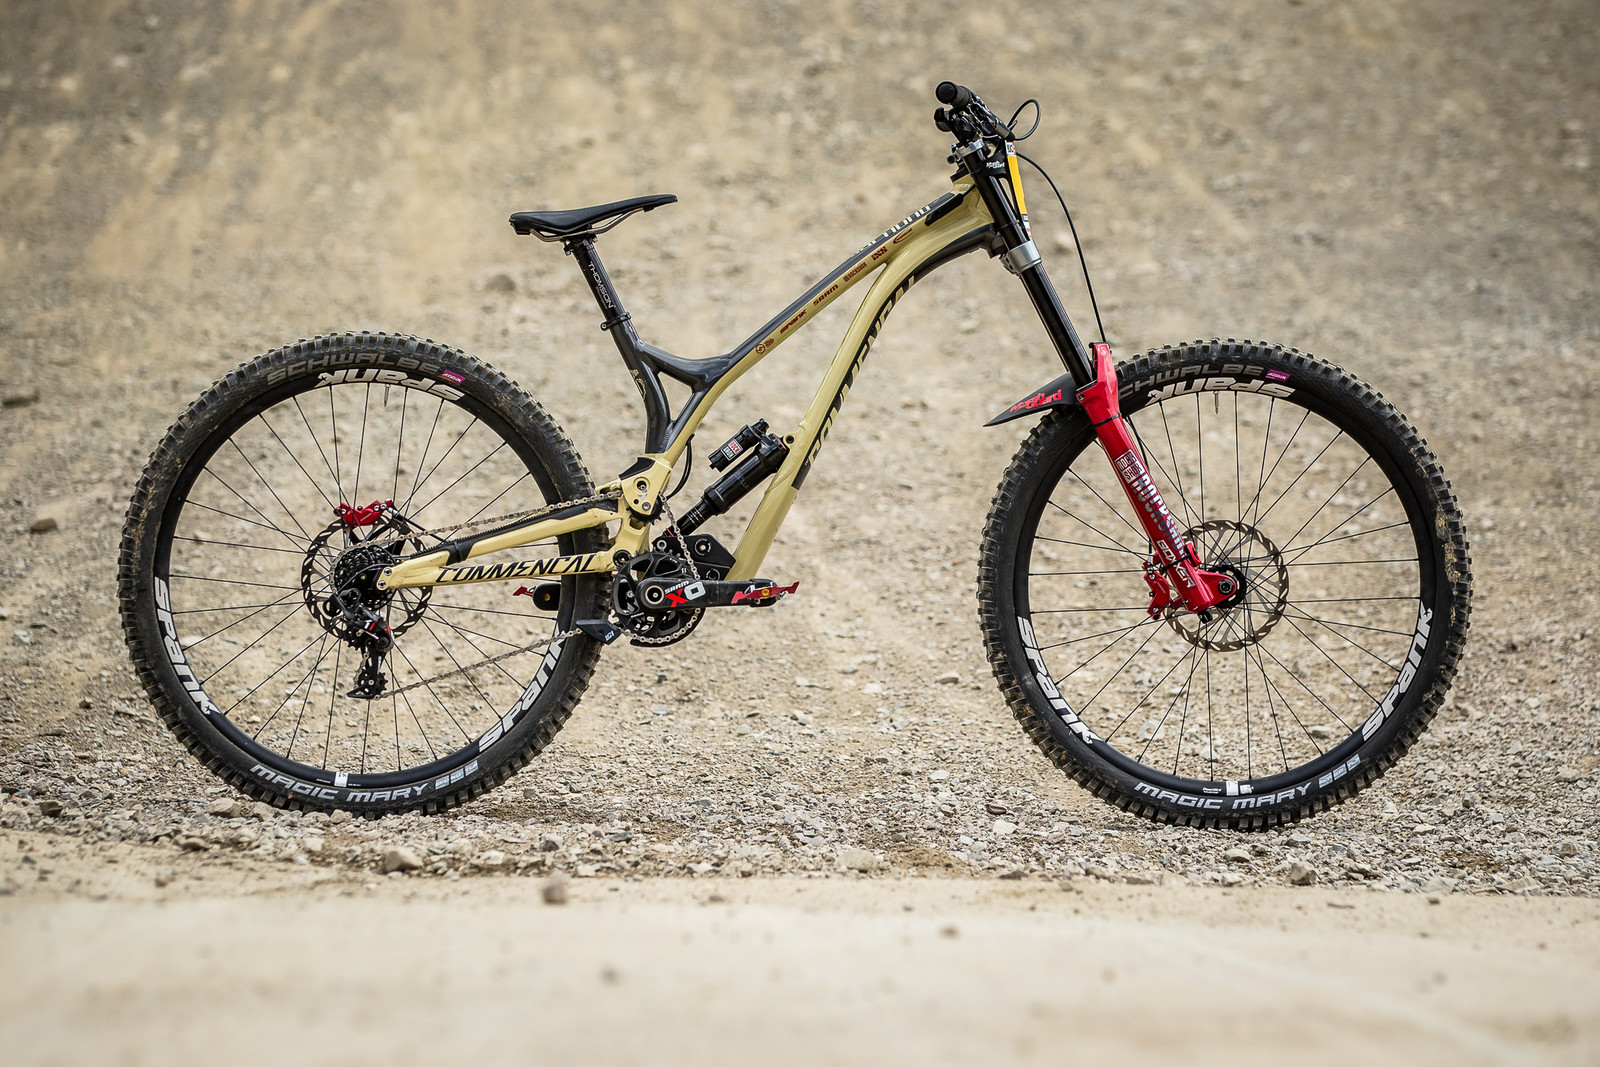 WINNING BIKE - Amaury Pierron's Commencal Supreme DH 29 - WINNING BIKE - Amaury Pierron's Commencal Supreme DH 29 - Mountain Biking Pictures - Vital MTB